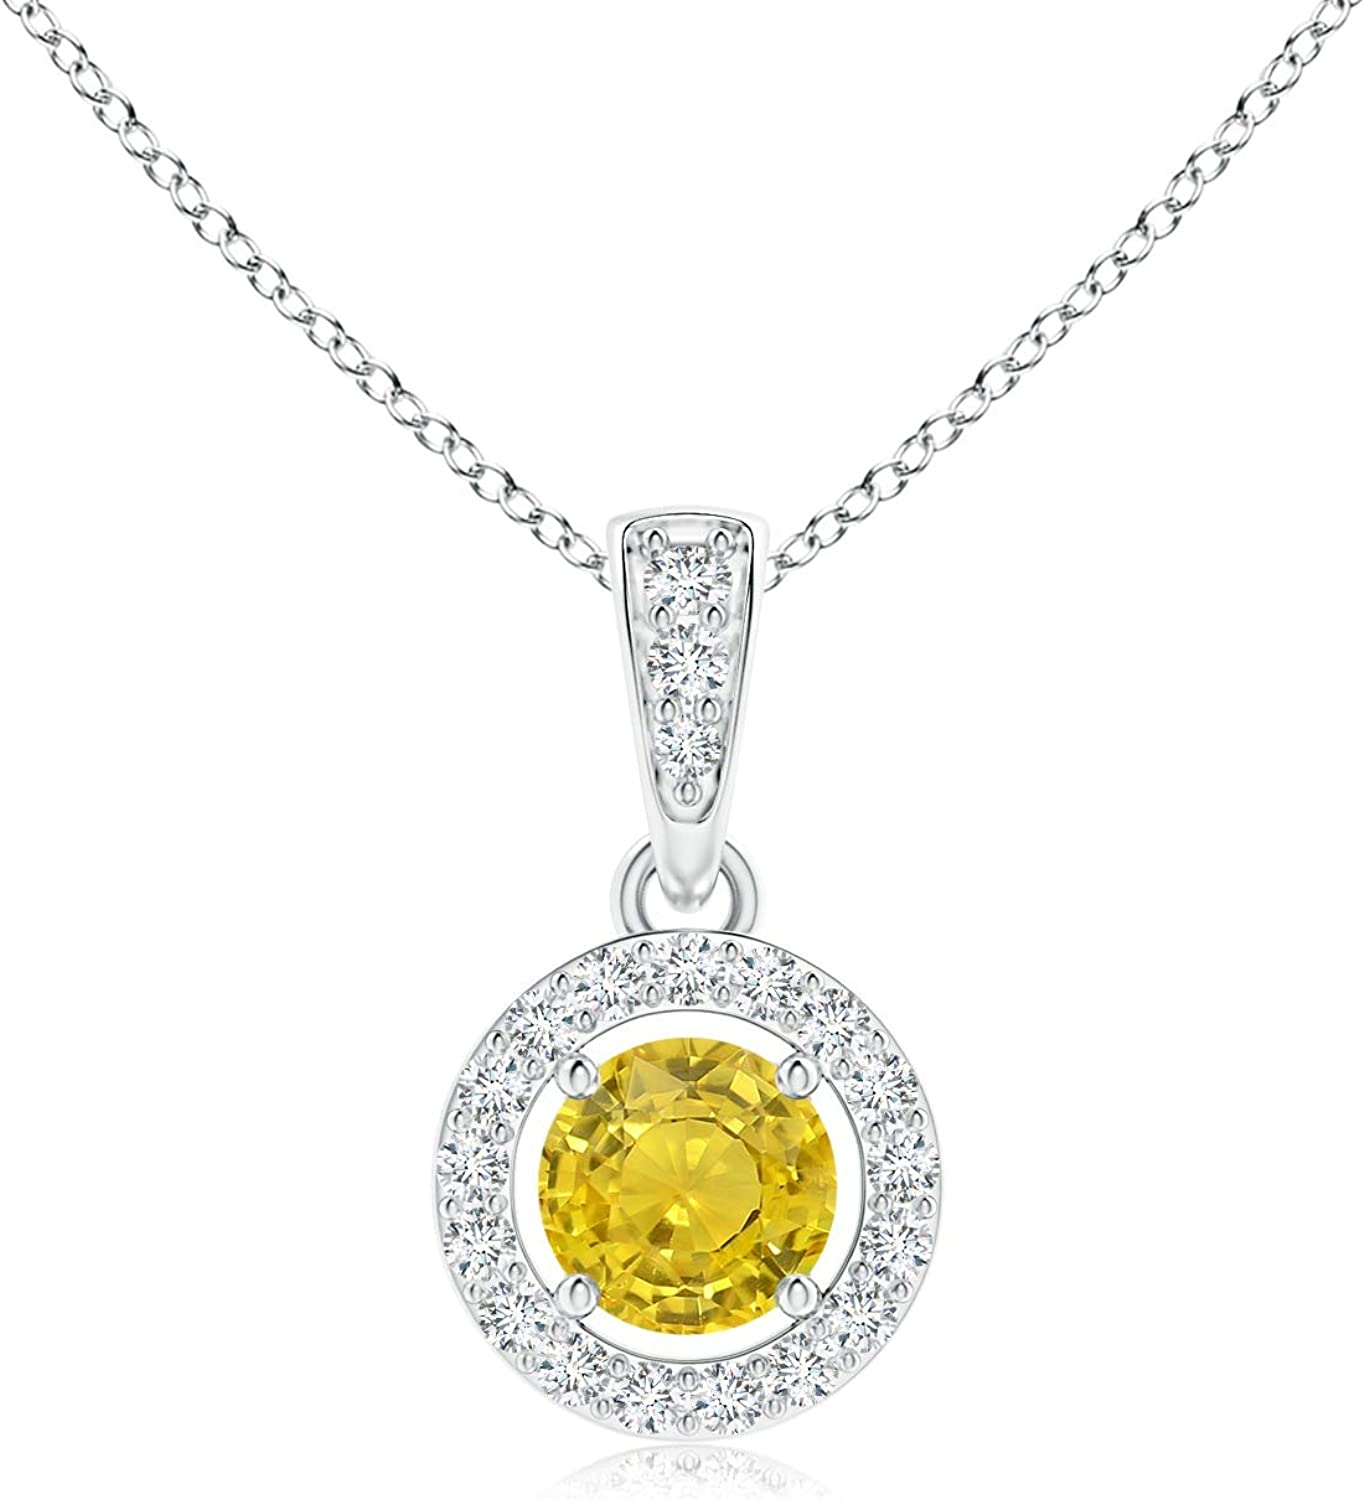 NEW Max 90% OFF Floating Yellow Sapphire Pendant with Platinum in Halo Diamond